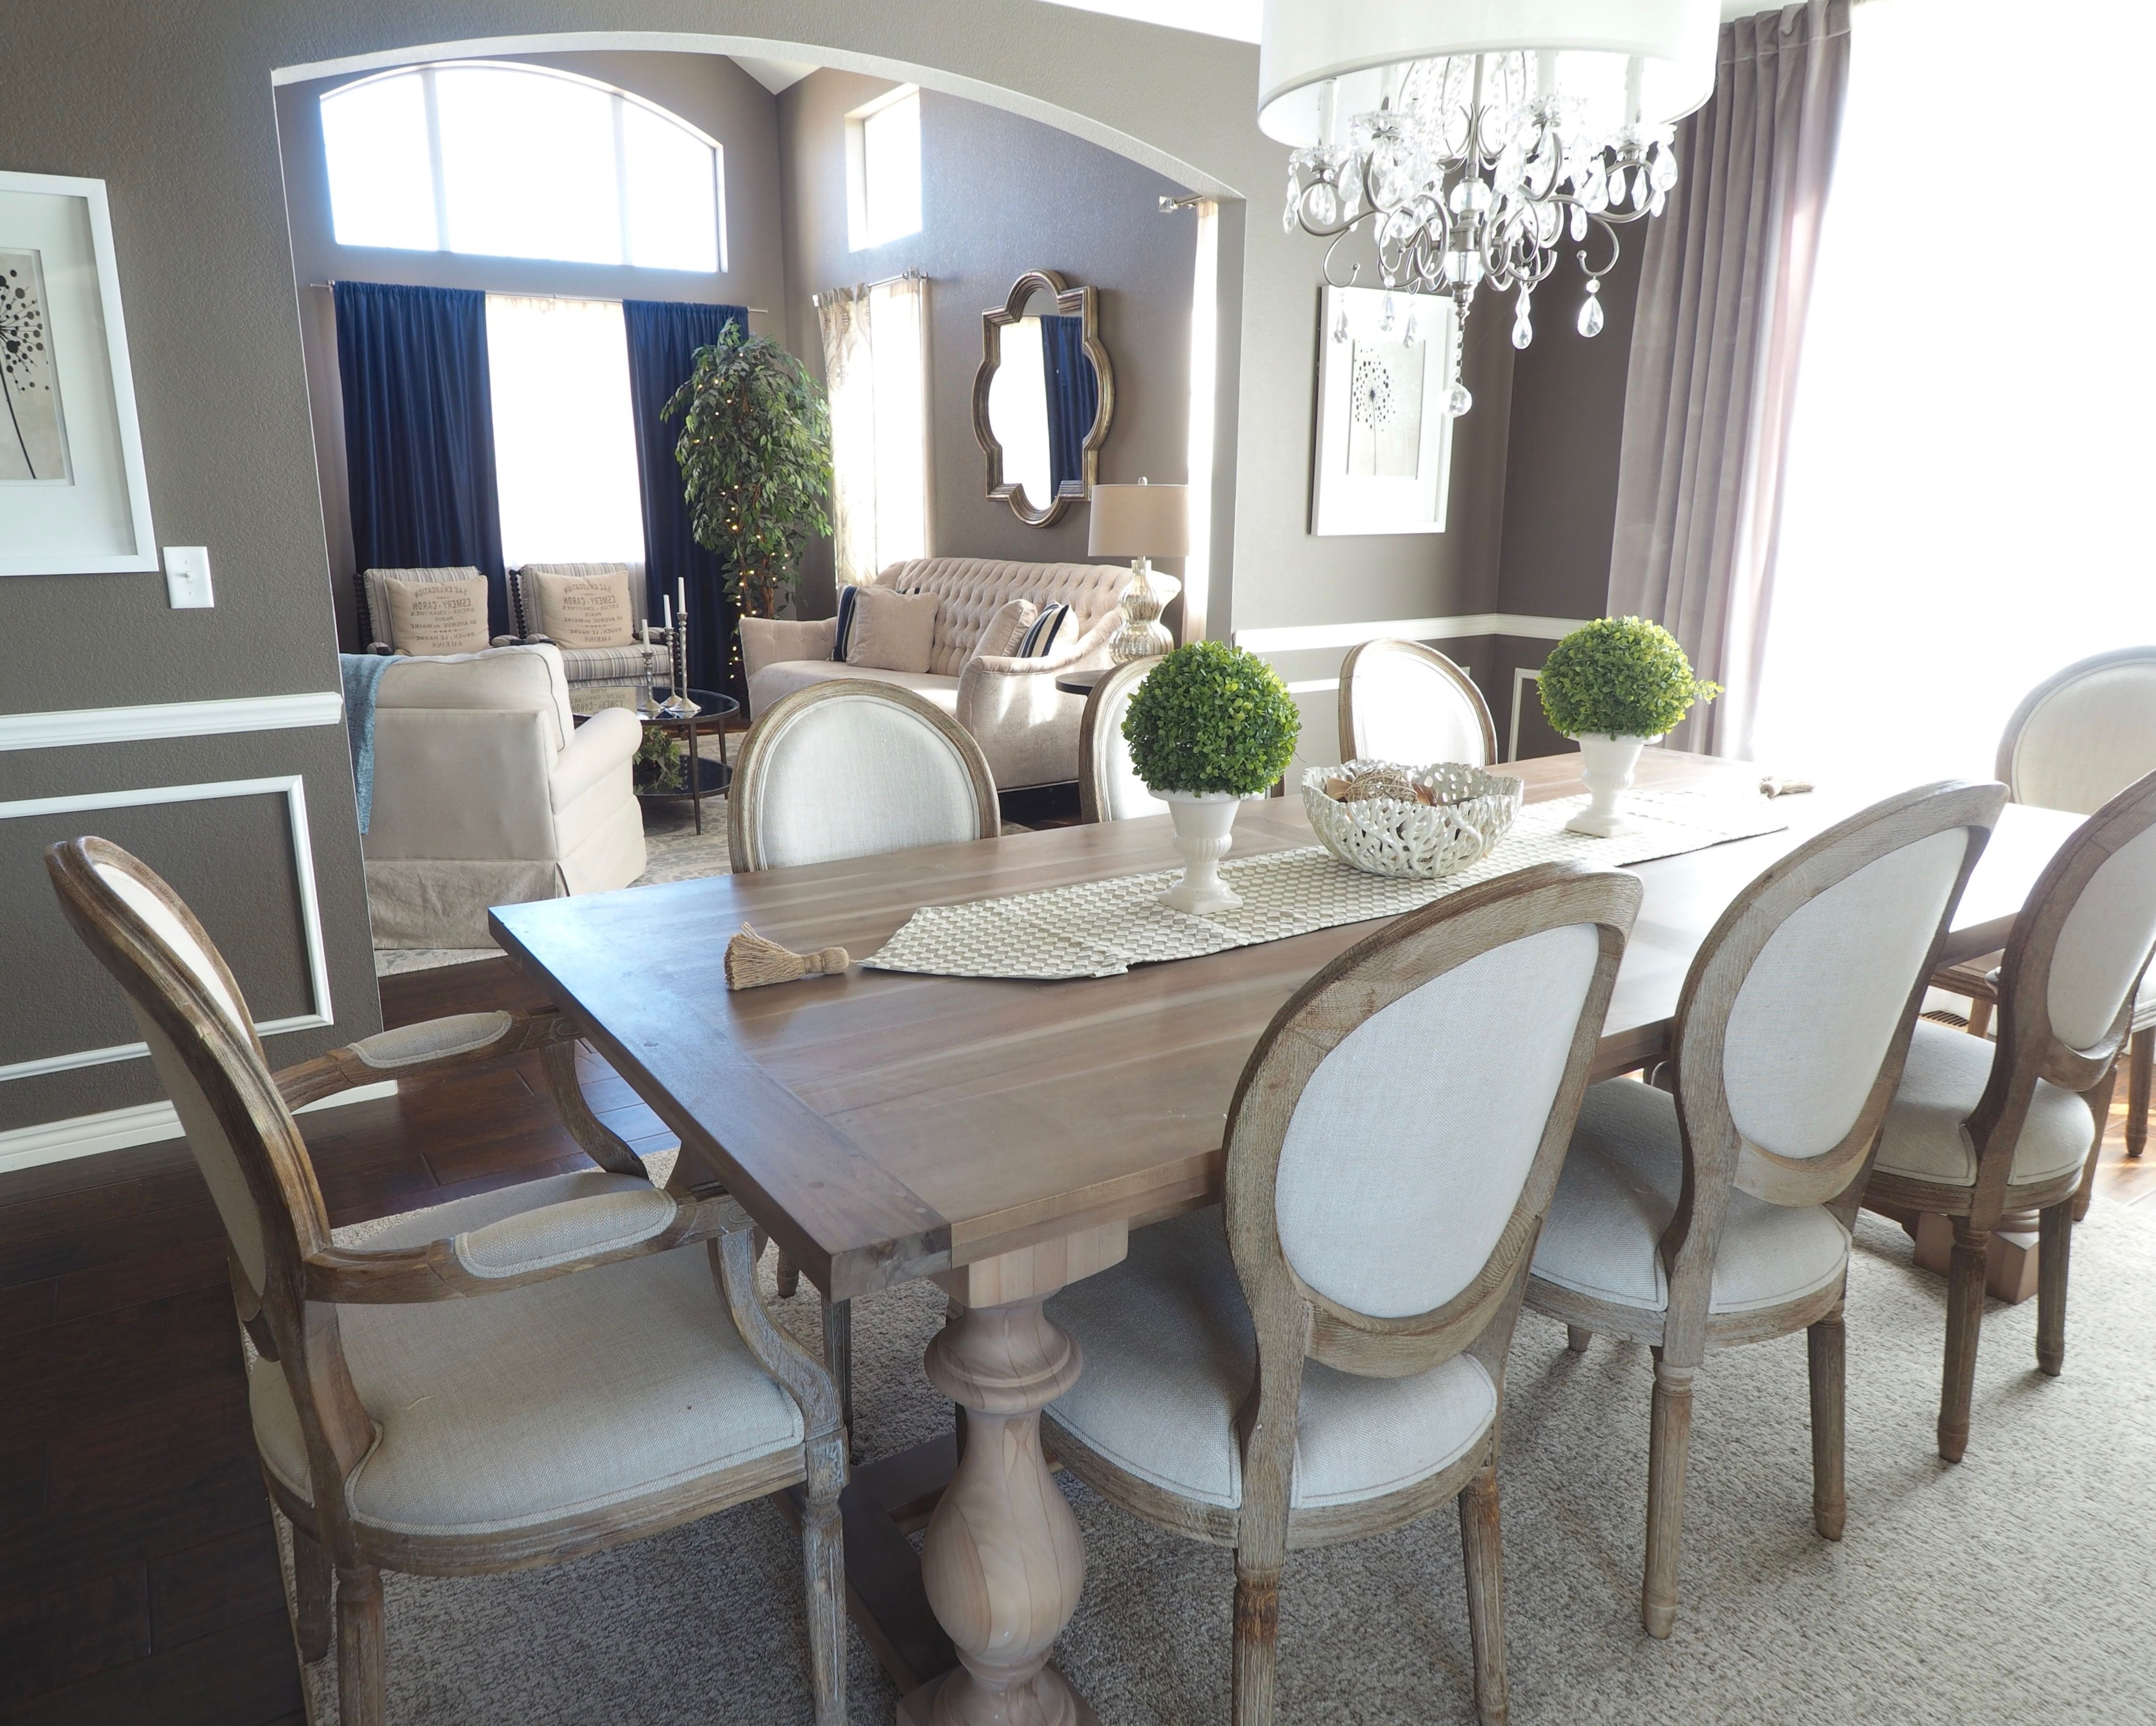 2017 Glam Dining Room Vintage Dining Room – Rustic Dining Room For Caira Black 5 Piece Round Dining Sets With Diamond Back Side Chairs (View 1 of 25)